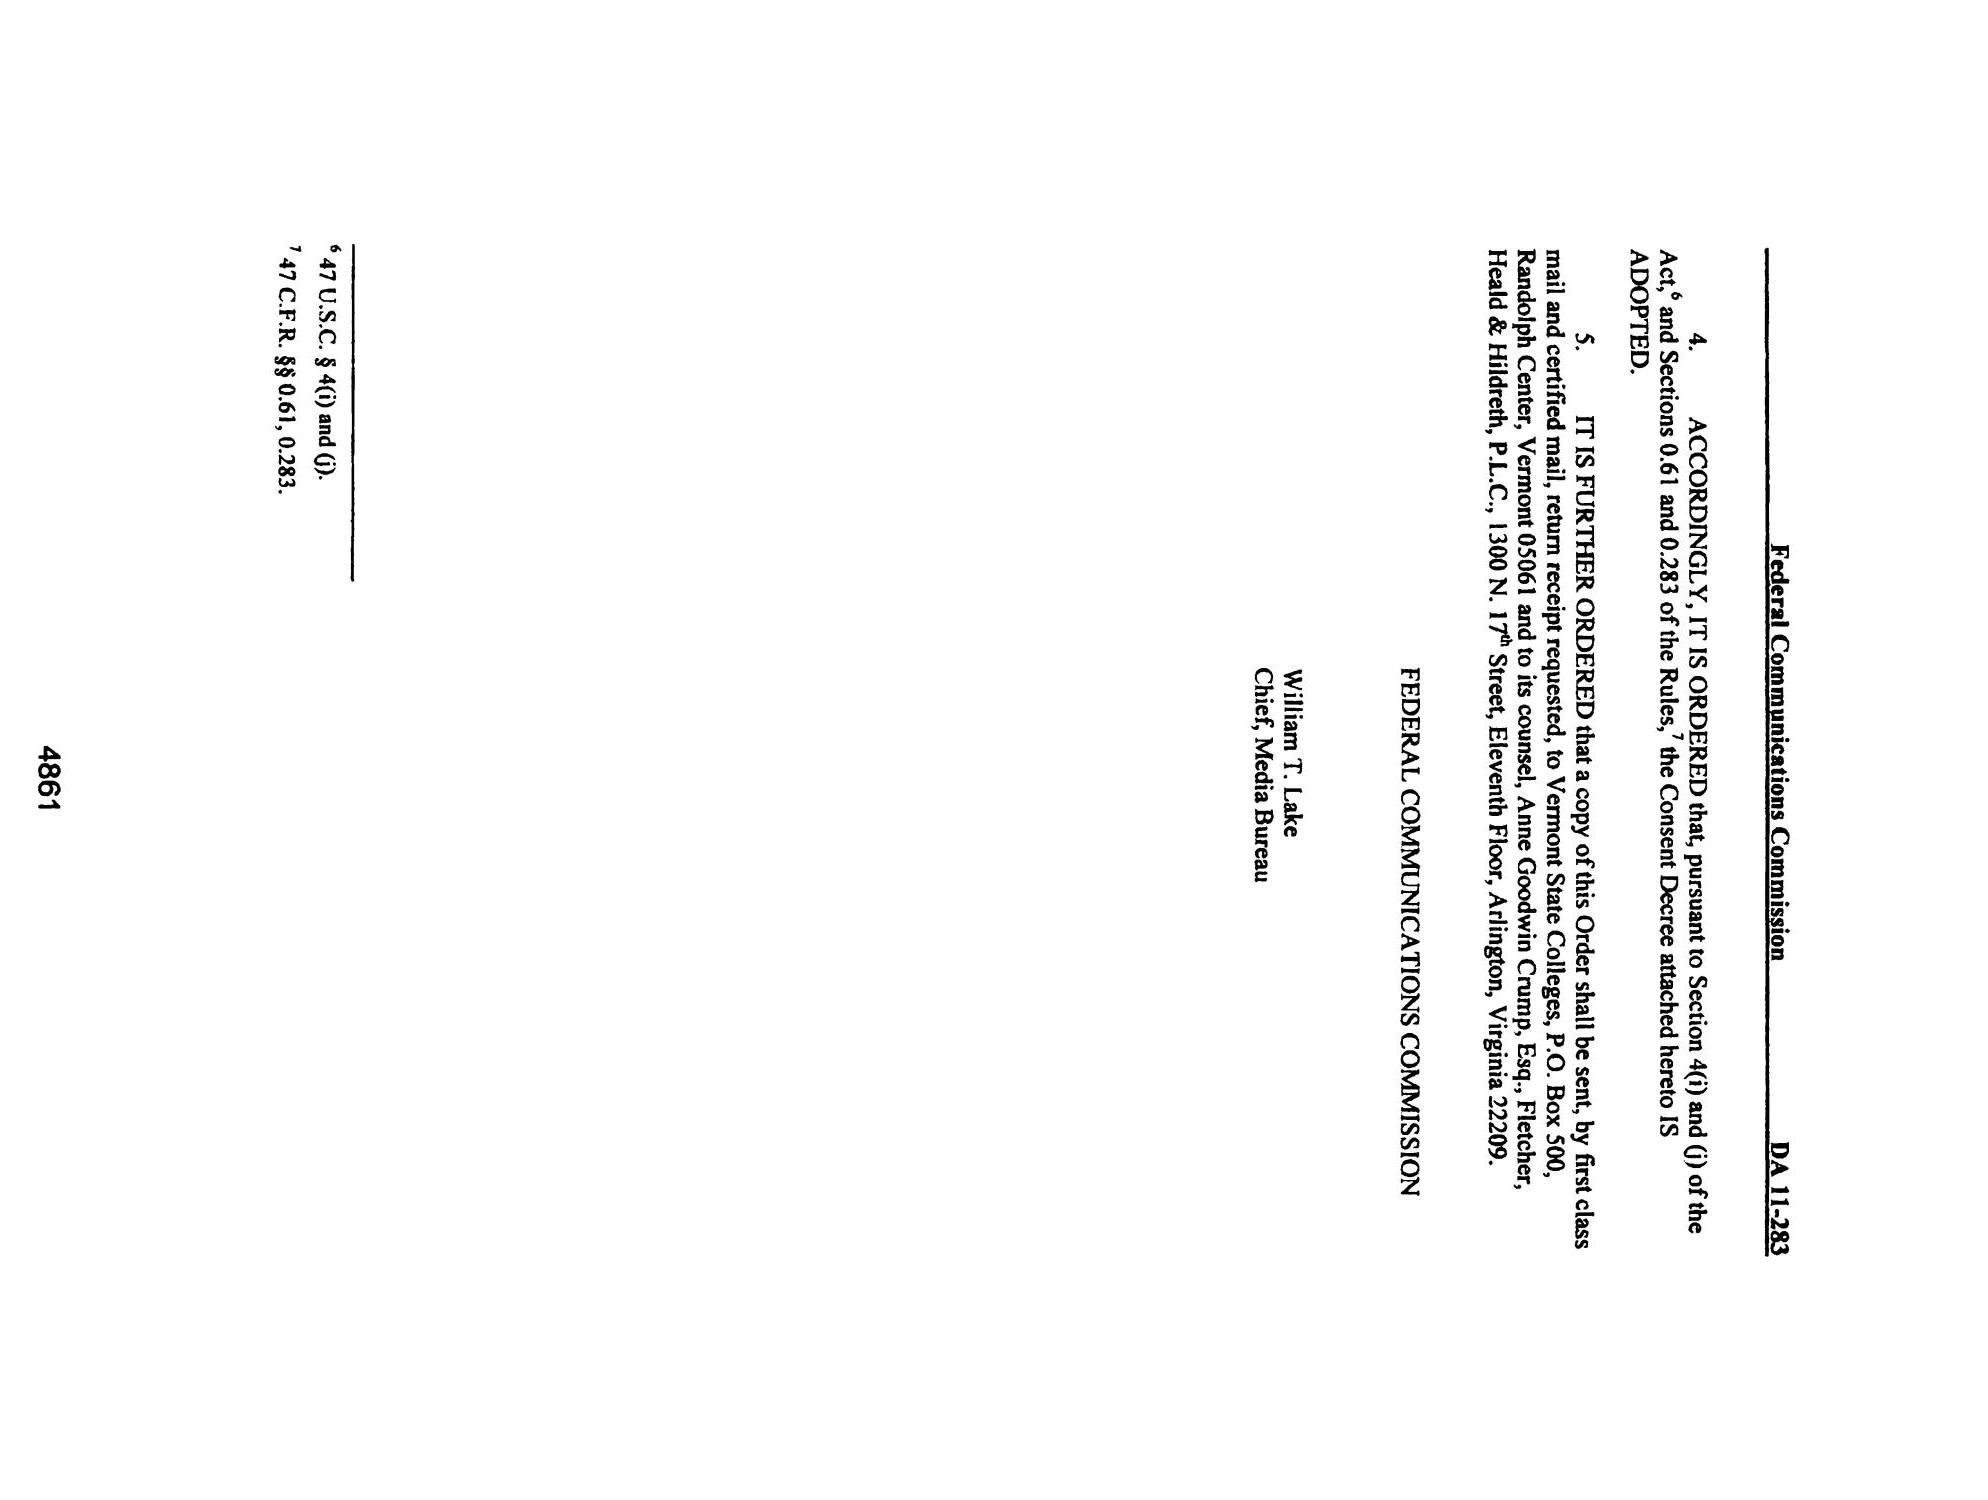 FCC Record, Volume 26, No. 7, Pages 4843 to 5761, March 28 - April 08, 2011                                                                                                      4861